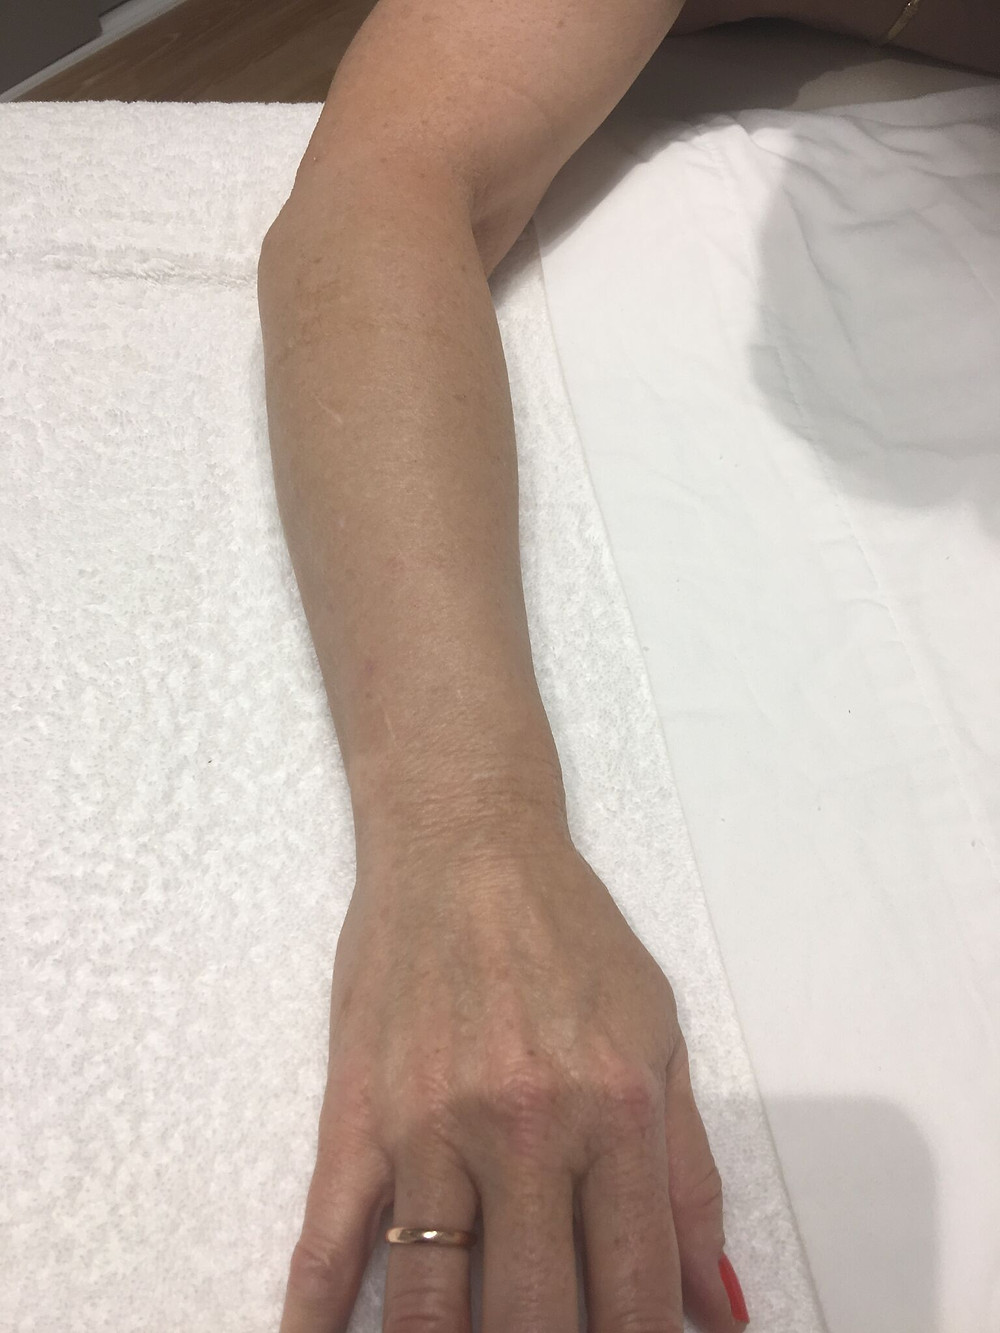 After IPL Photorejuvenation - Left Arm